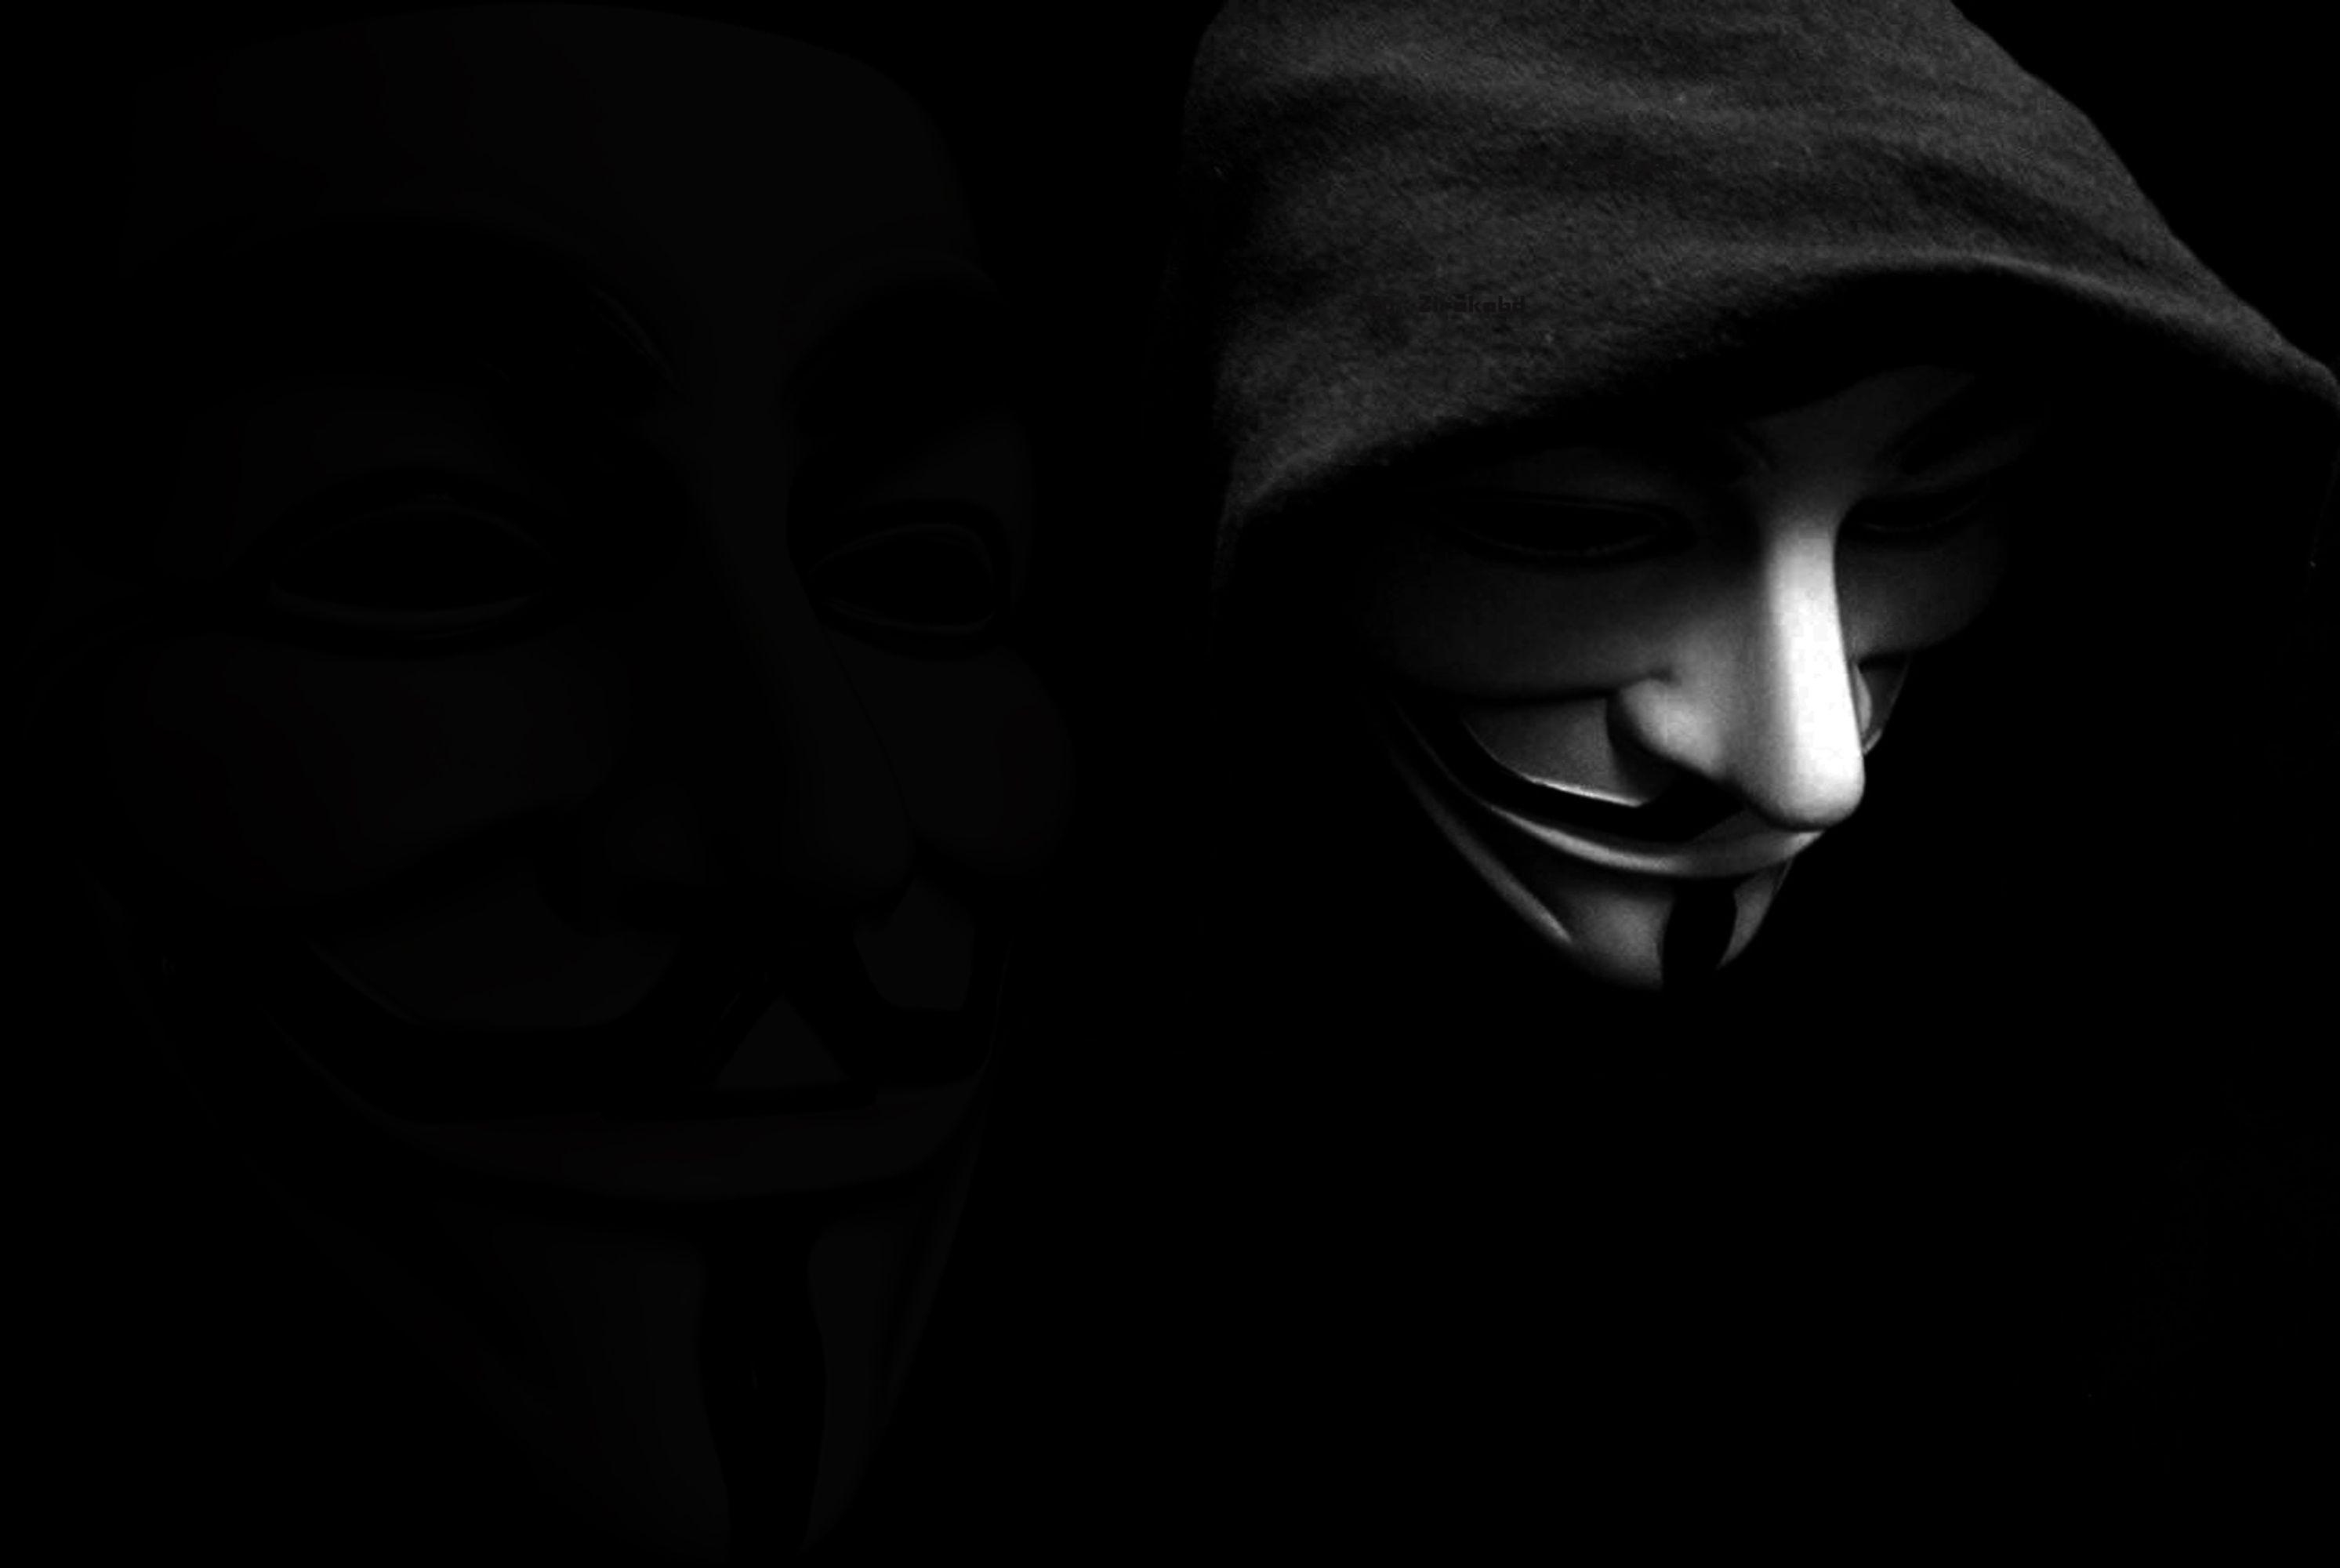 Title V For Vendetta Wallpapers Hd Wallpaper Cave Dimension 2985 X 2000 File Type JPG JPEG